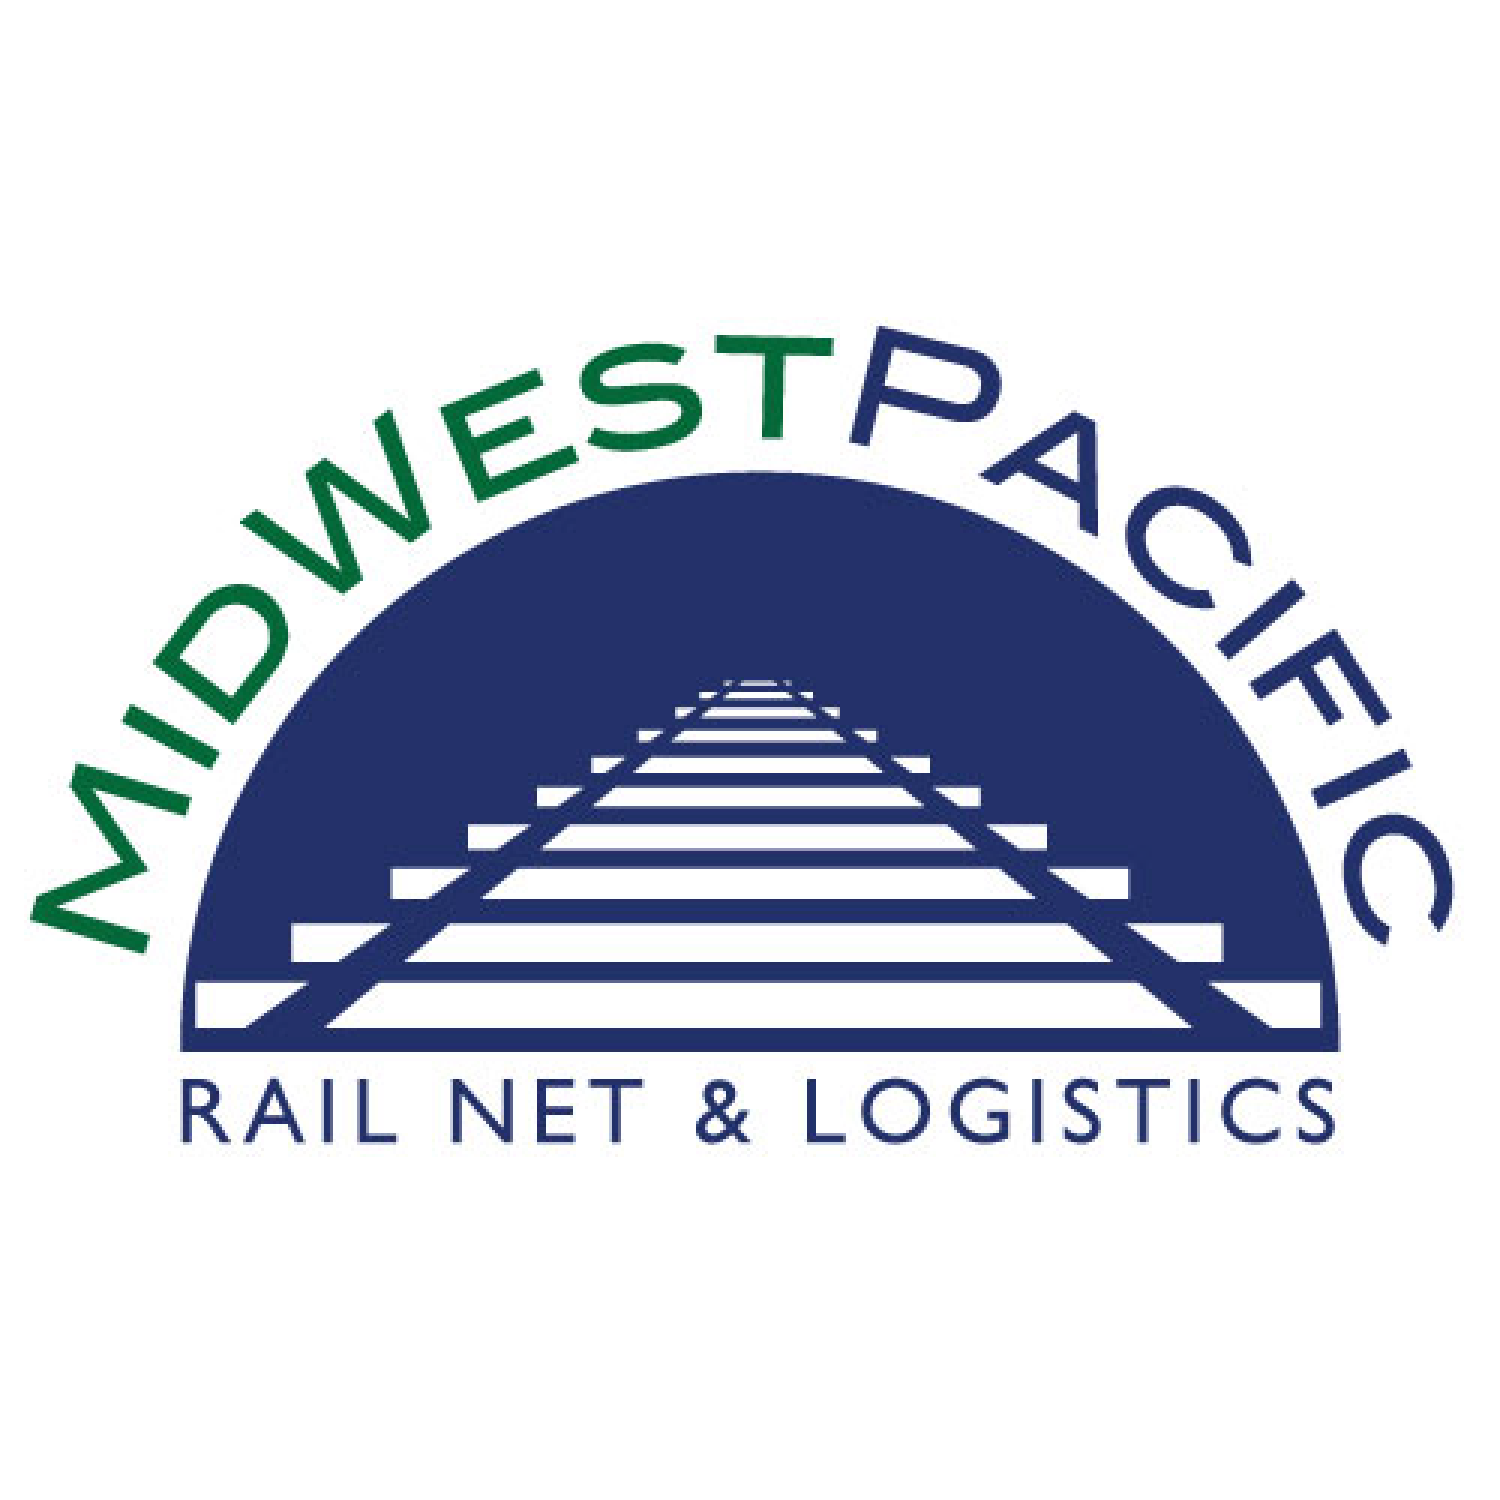 MidWest Pacific logo